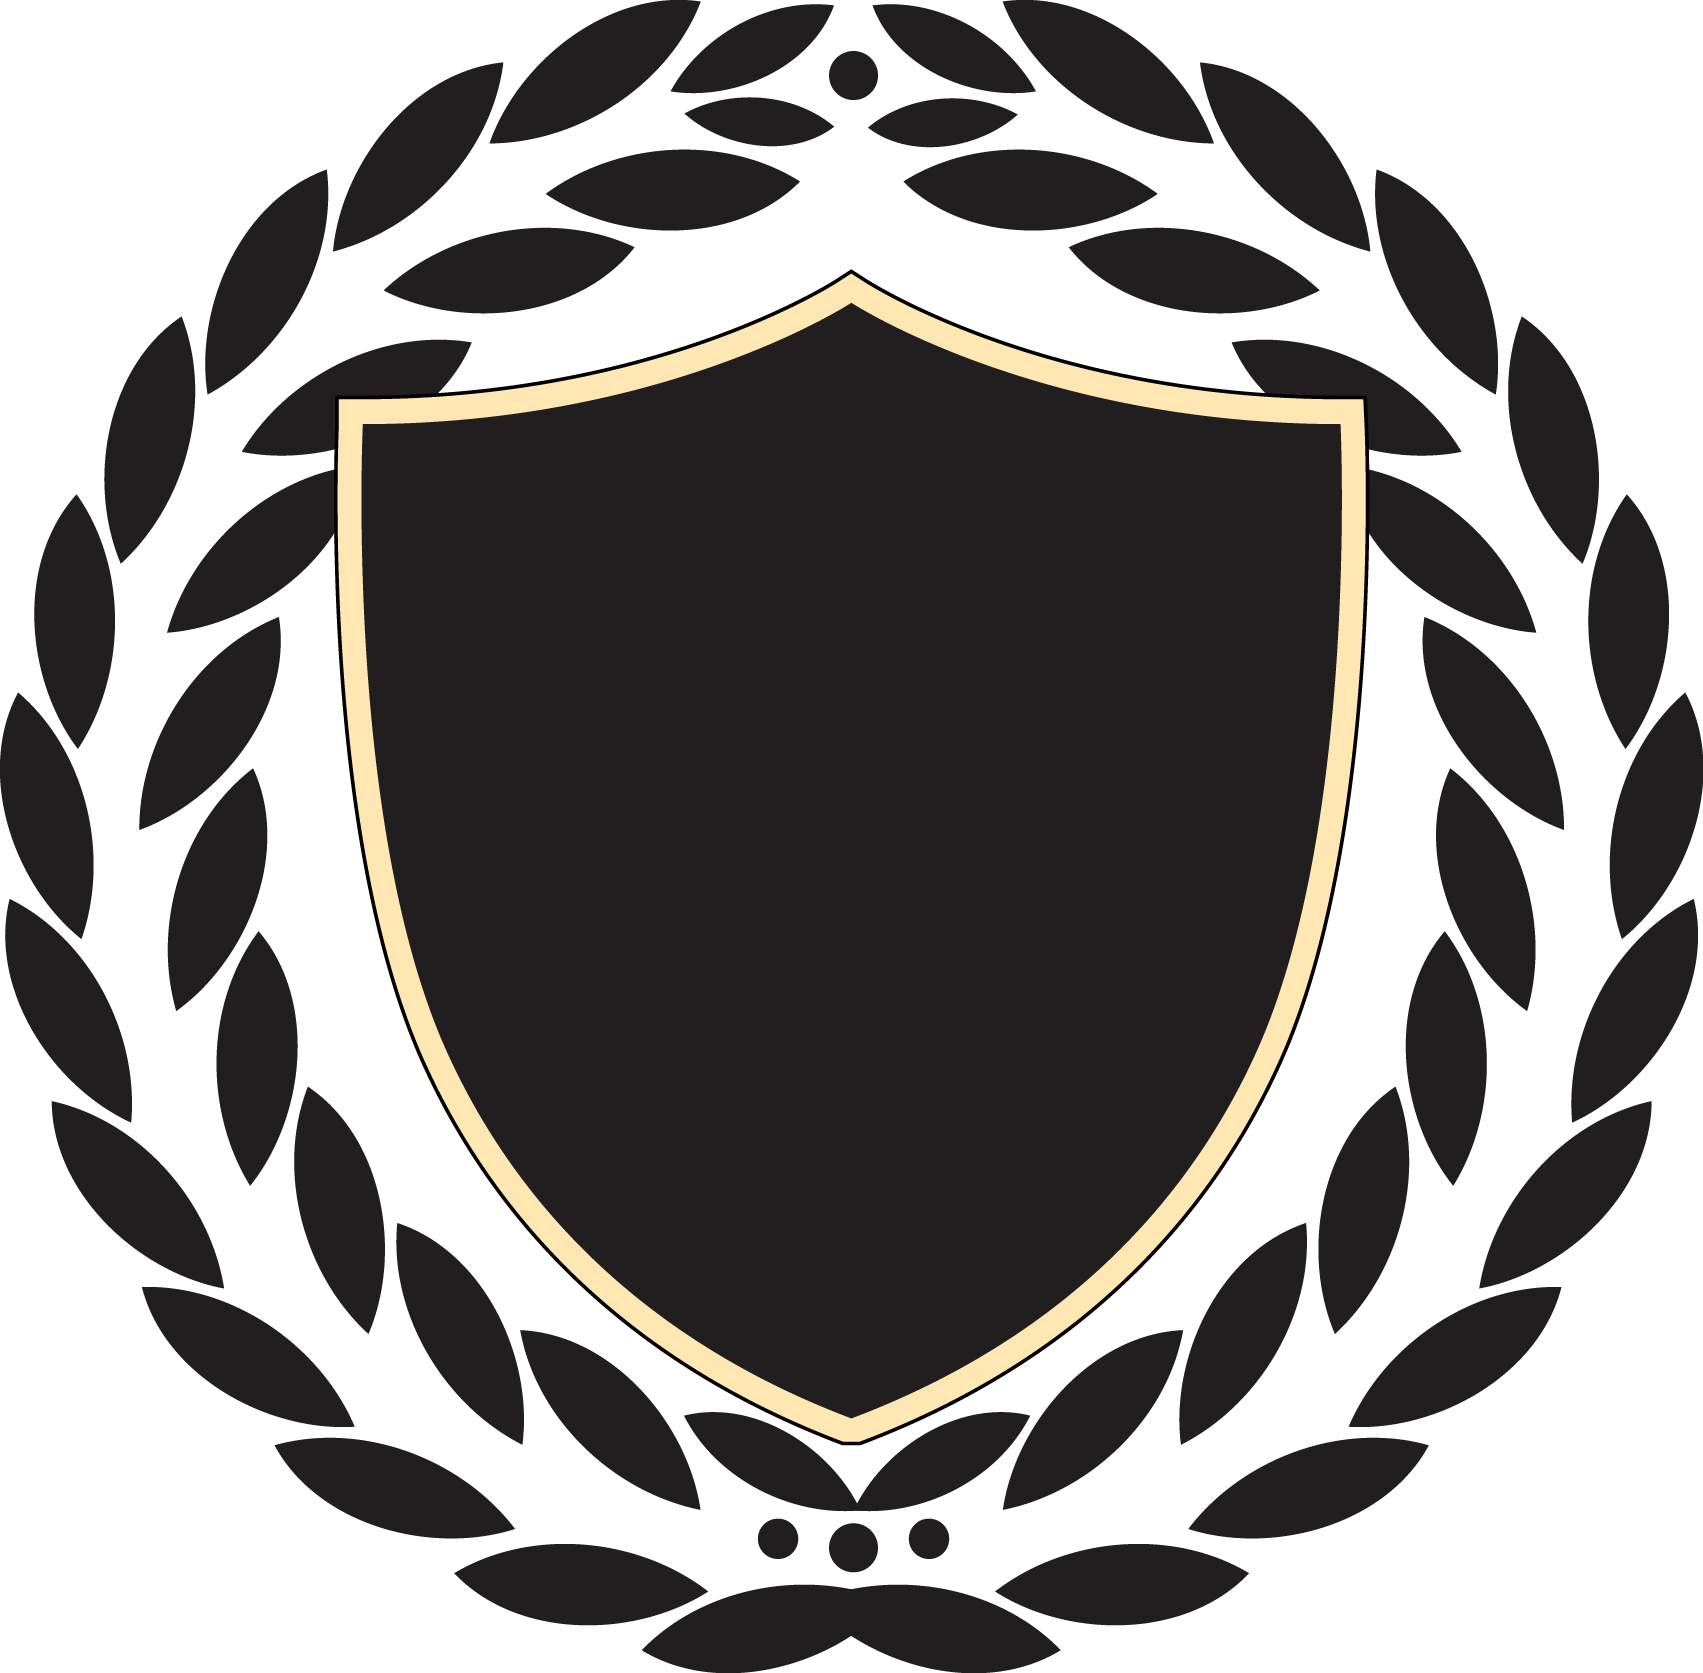 Pattern Shield Icon Free Download Image PNG Image